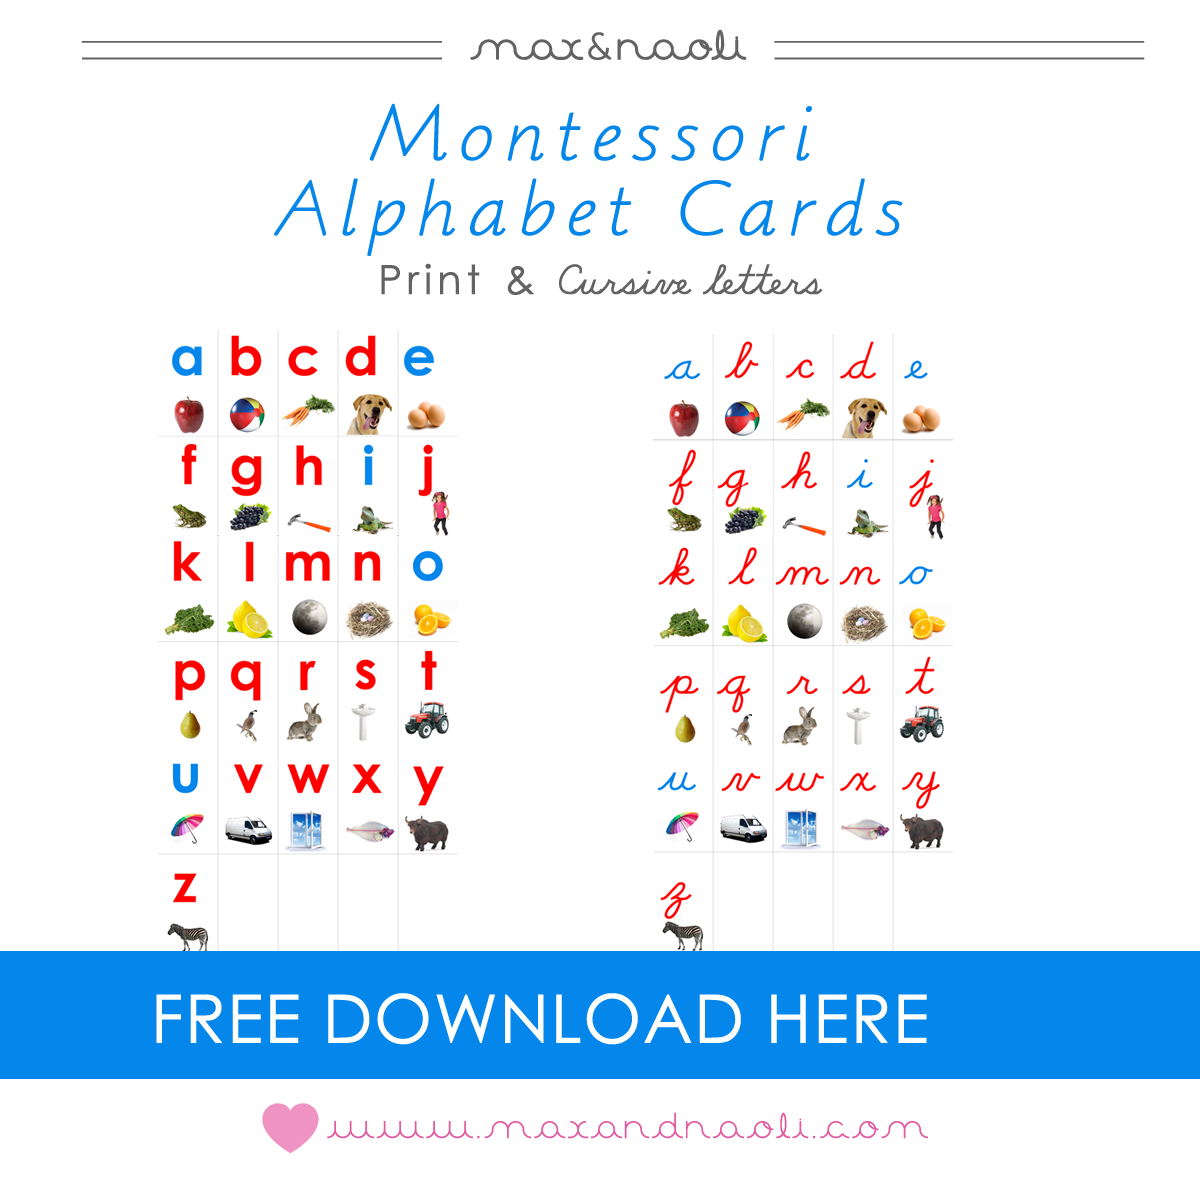 Free Montessori Alphabet Cards With Print And Cursive